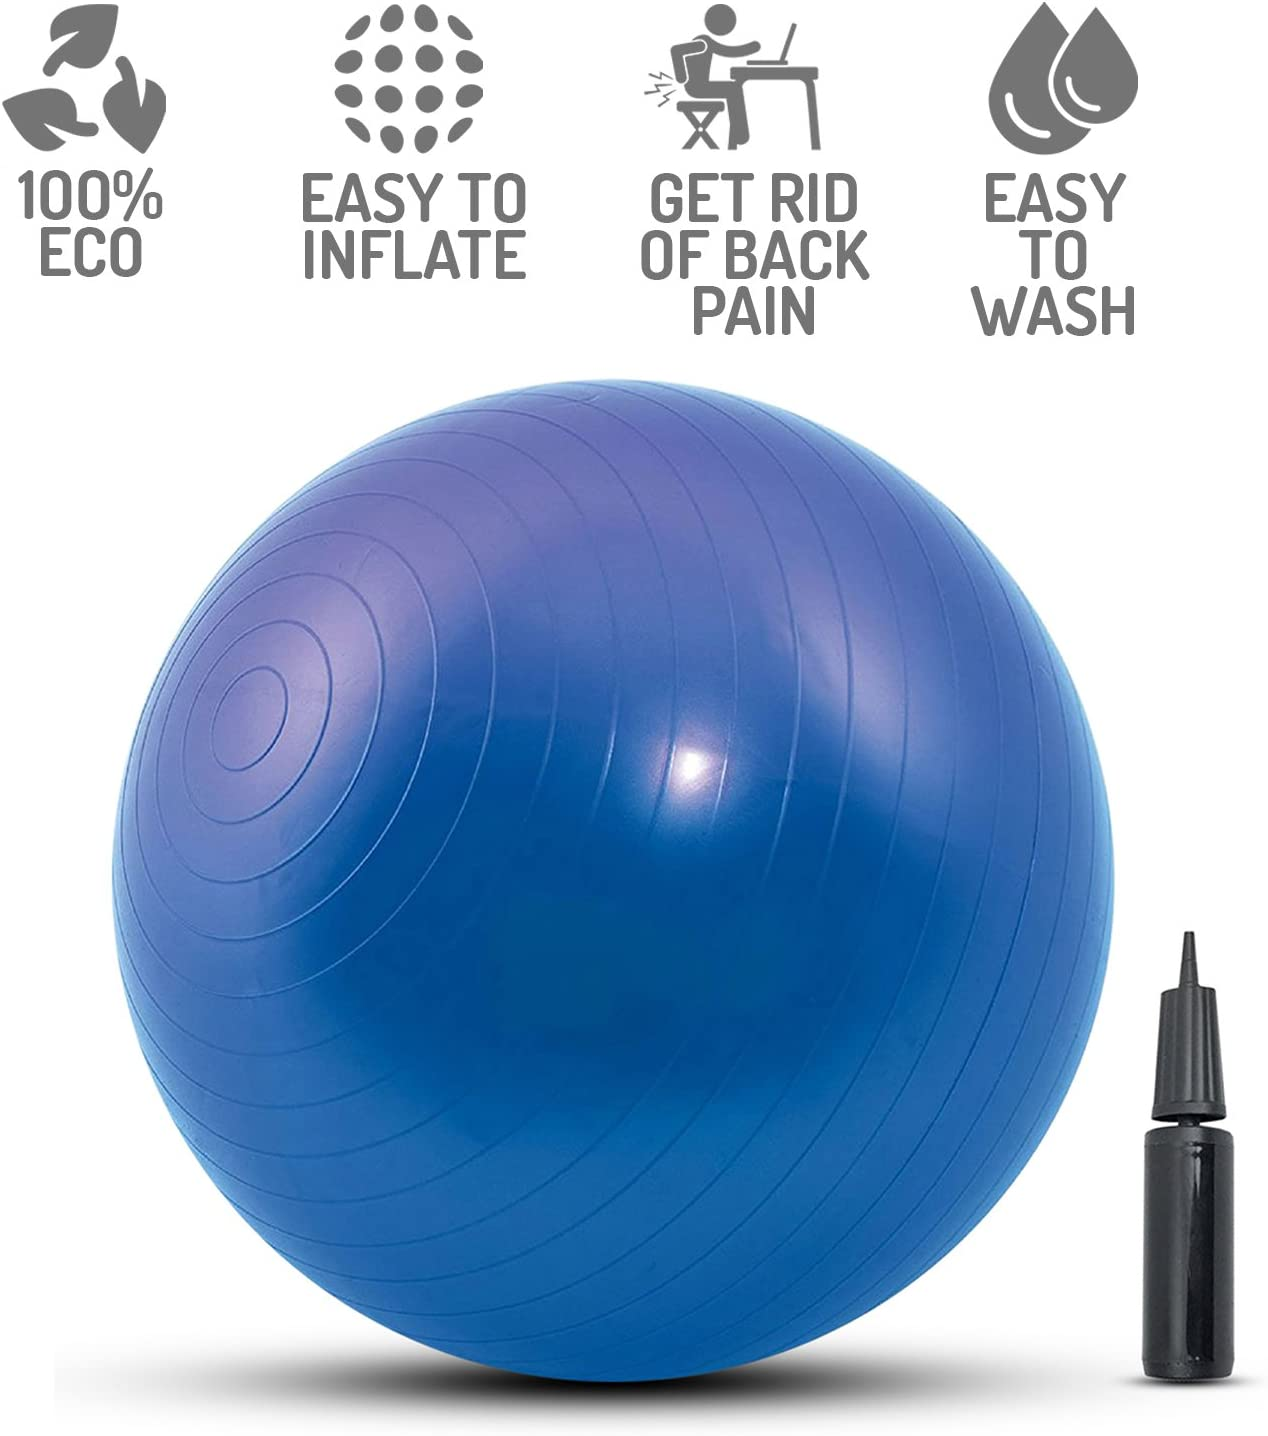 Perfect Life Ideas Yoga Ball 65cm Exercise Ball for Adults Home Office Fitness Workout – 65 cm Birthing Ball Pregnancy – Birth Ball for Pregnancy and Labor with Pump Included